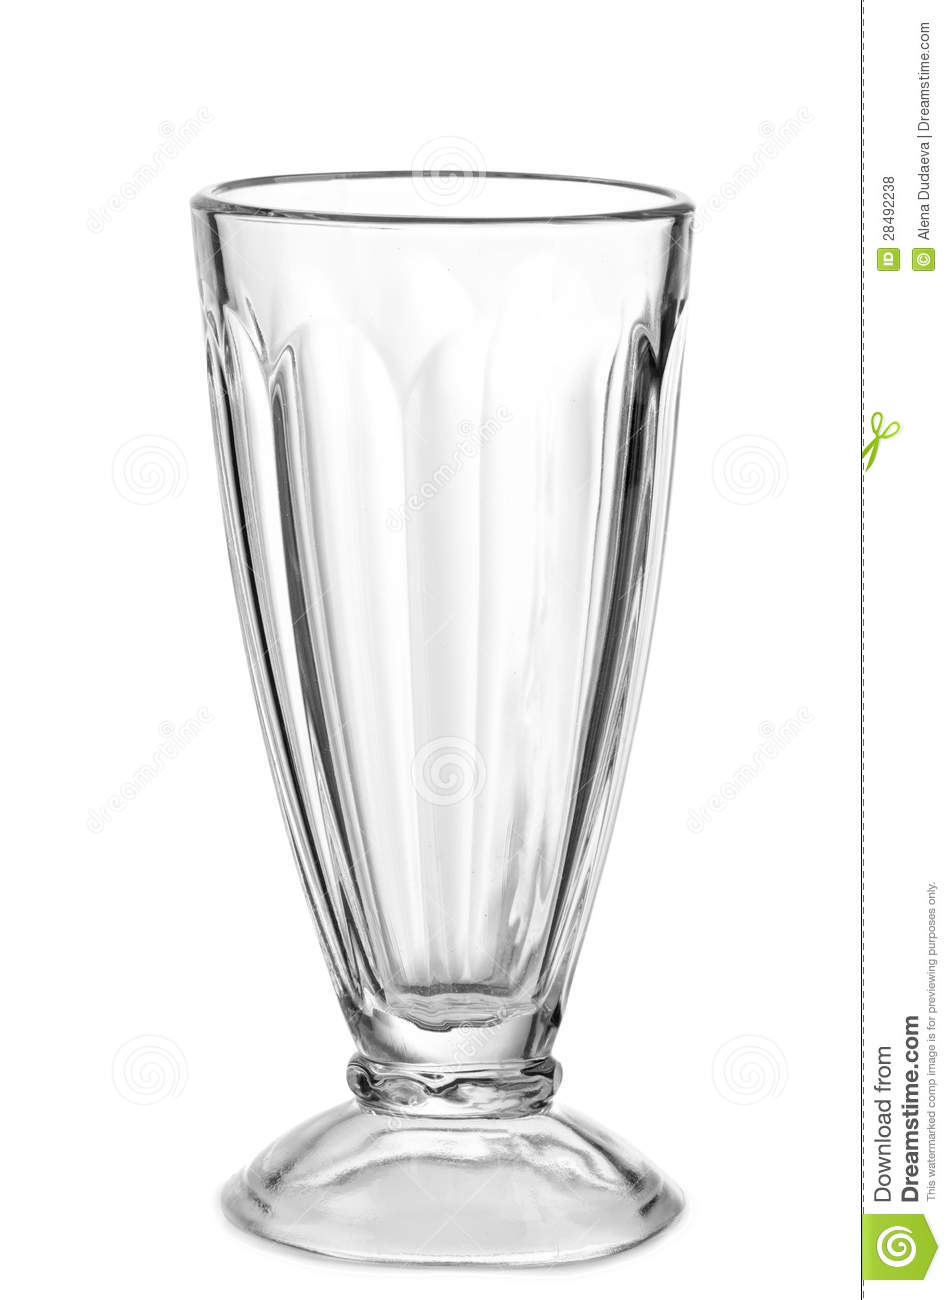 Image Result For What Isa Drink